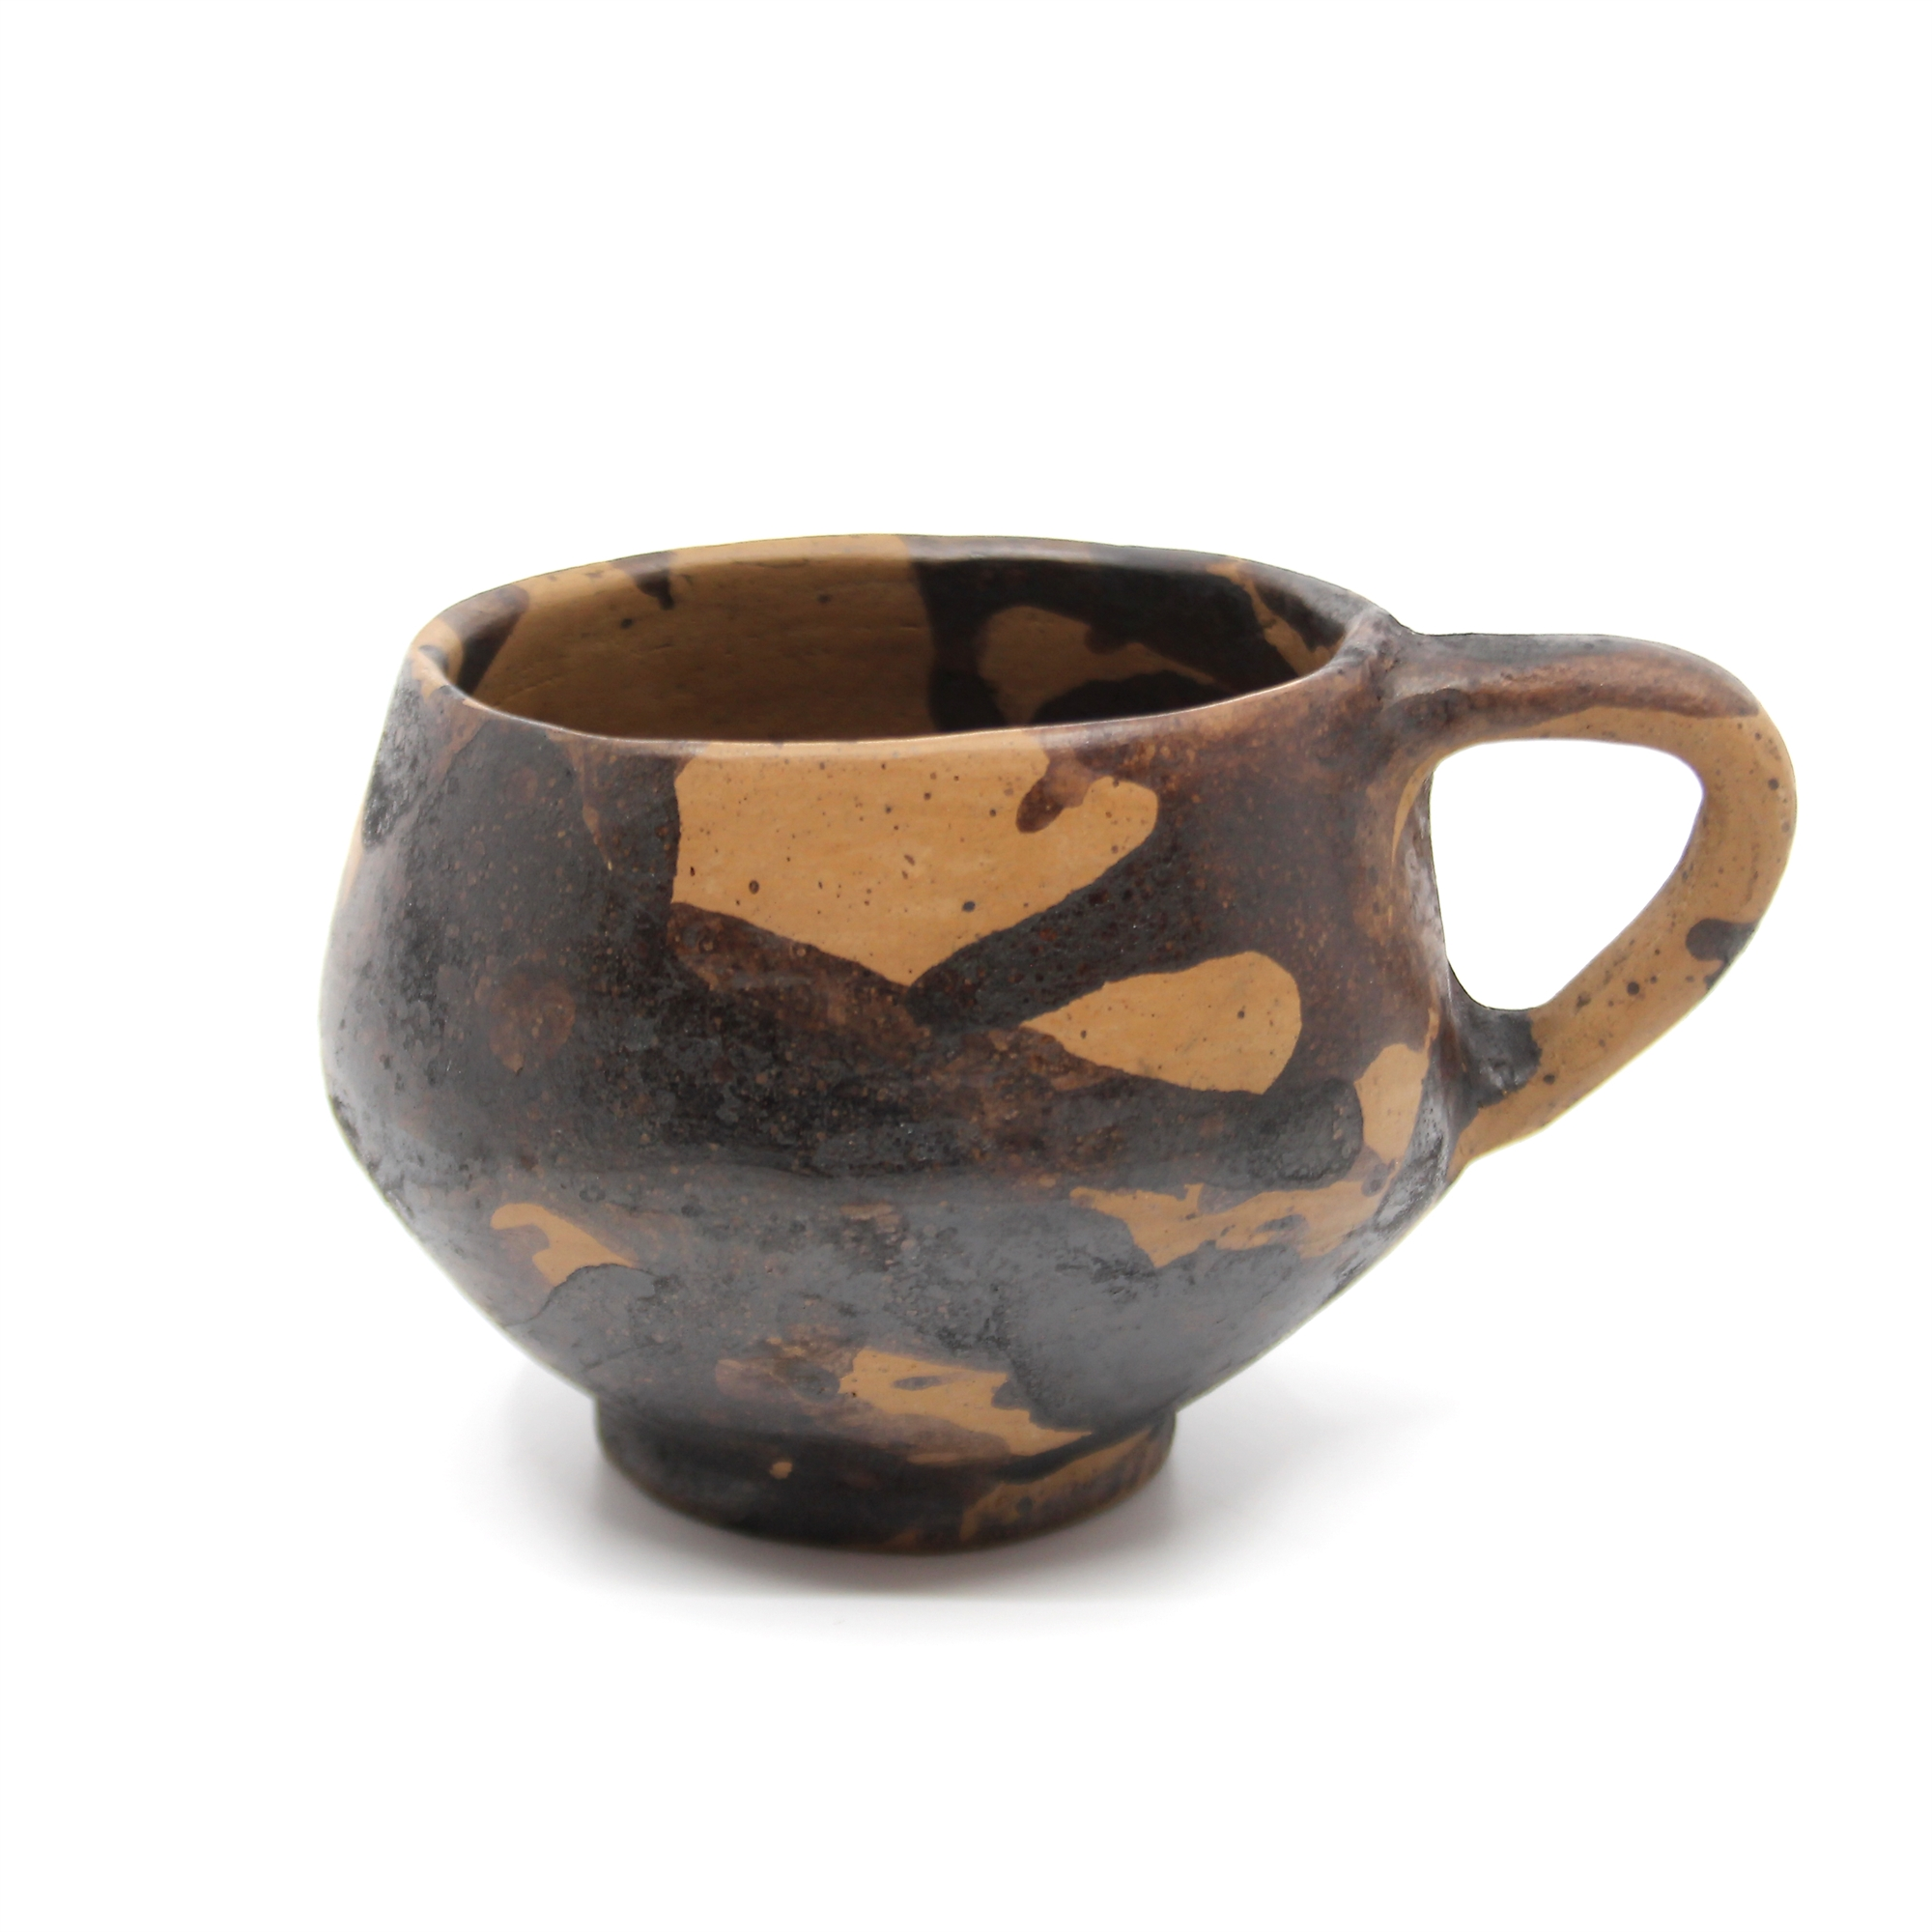 Nabora Coffee Cup by Colectivo 1050